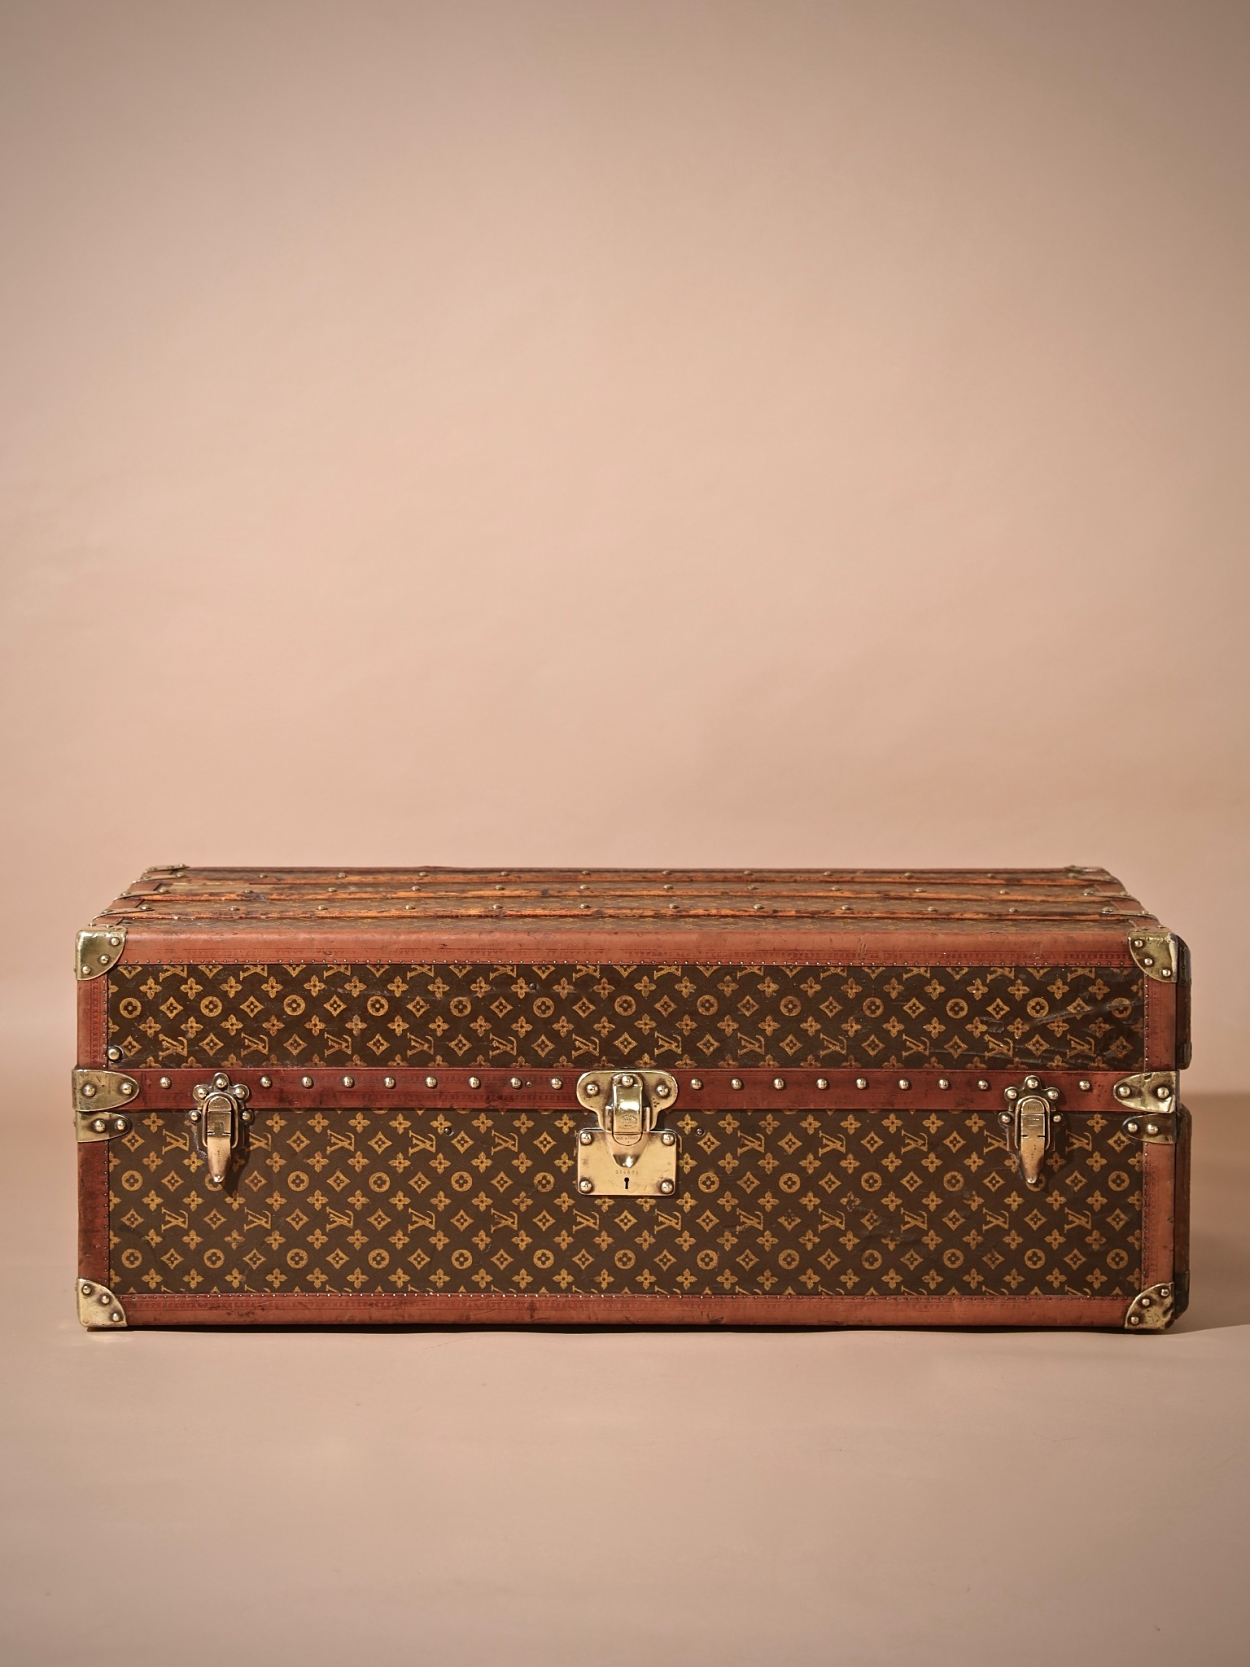 the-well-traveled-trunk-louis-vuitton-thumbnail-product-5724-1